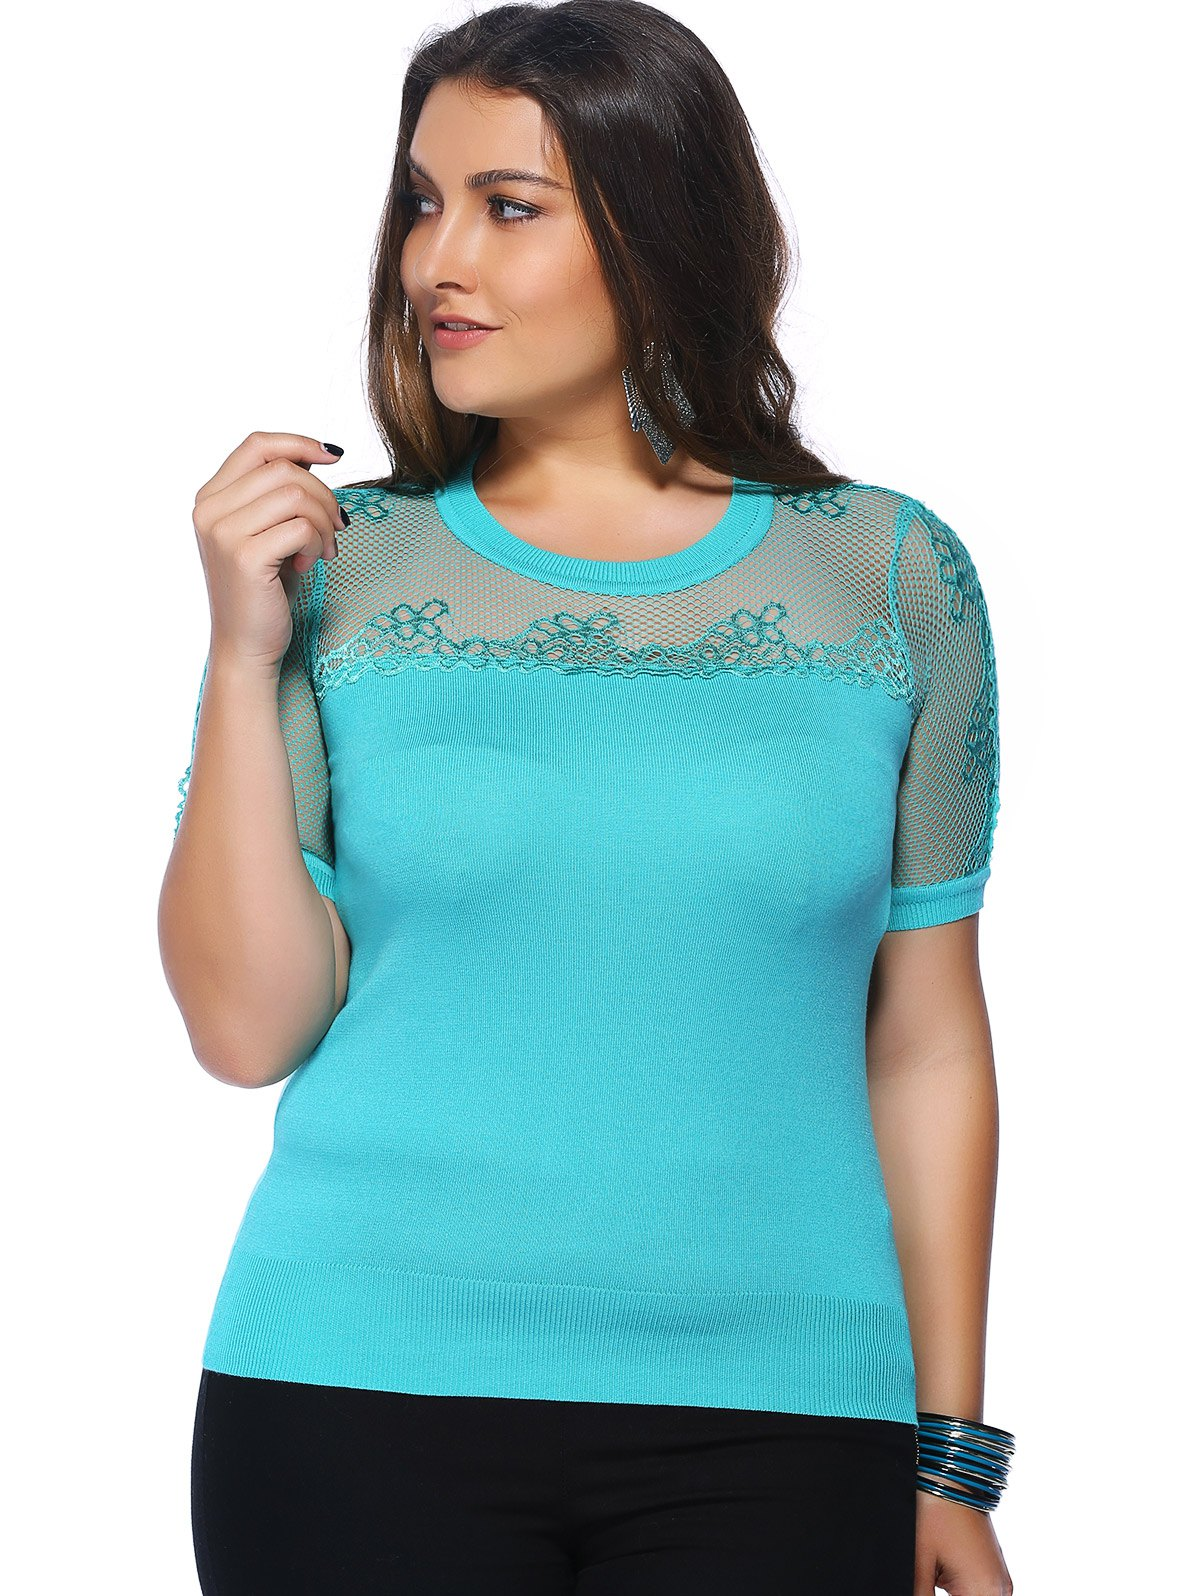 Chic Plus Size Hollow Out Knitted Solid Color Women's Blouse - LAKE BLUE ONE SIZE(FIT SIZE L TO 3XL)